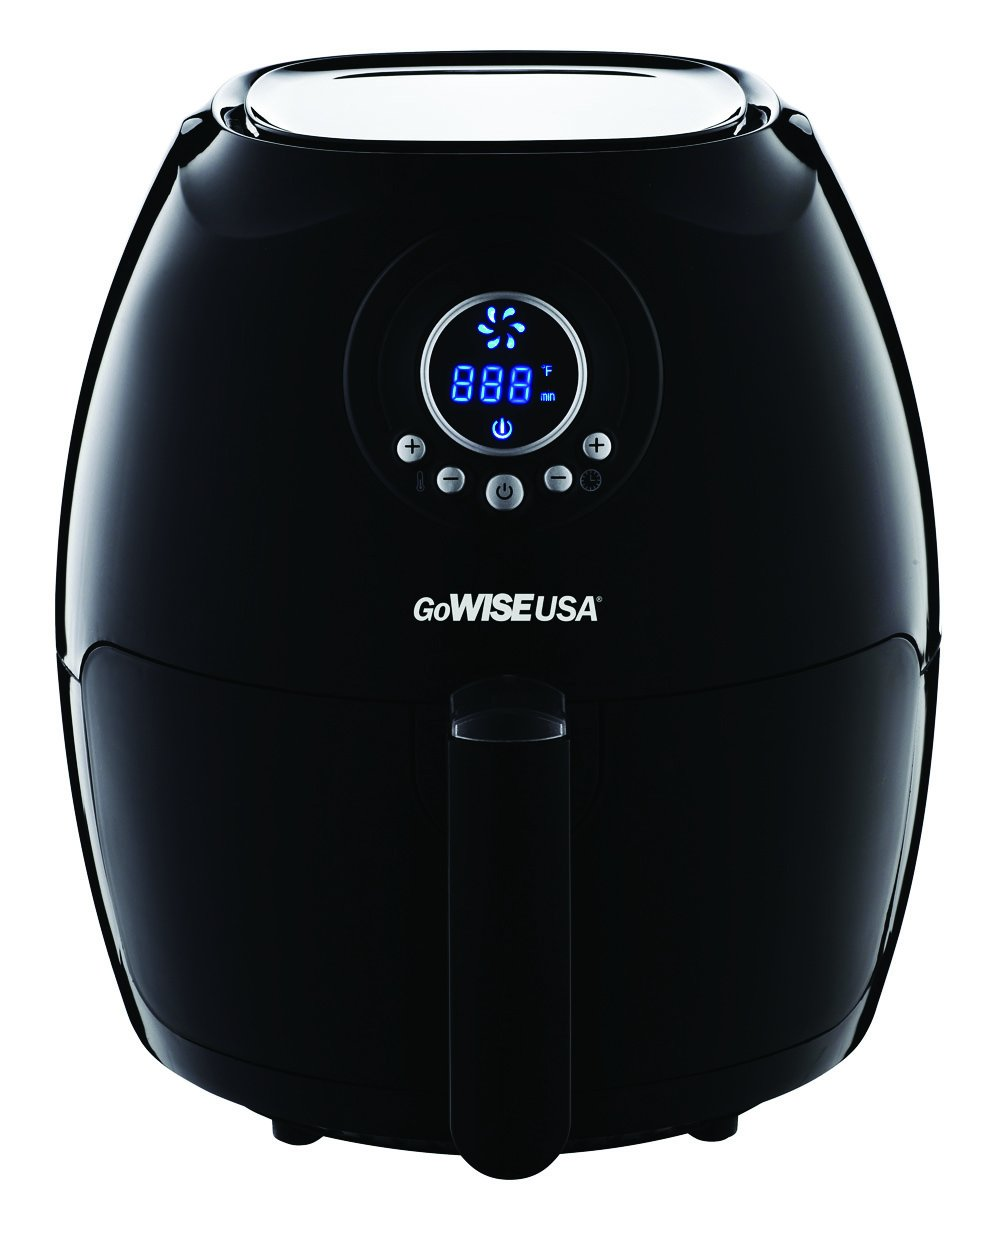 GoWISE USA Air Fryer with 6-Piece Accessory Set 50 Recipes for Your Air Fryer Book 2.75-QT, Black